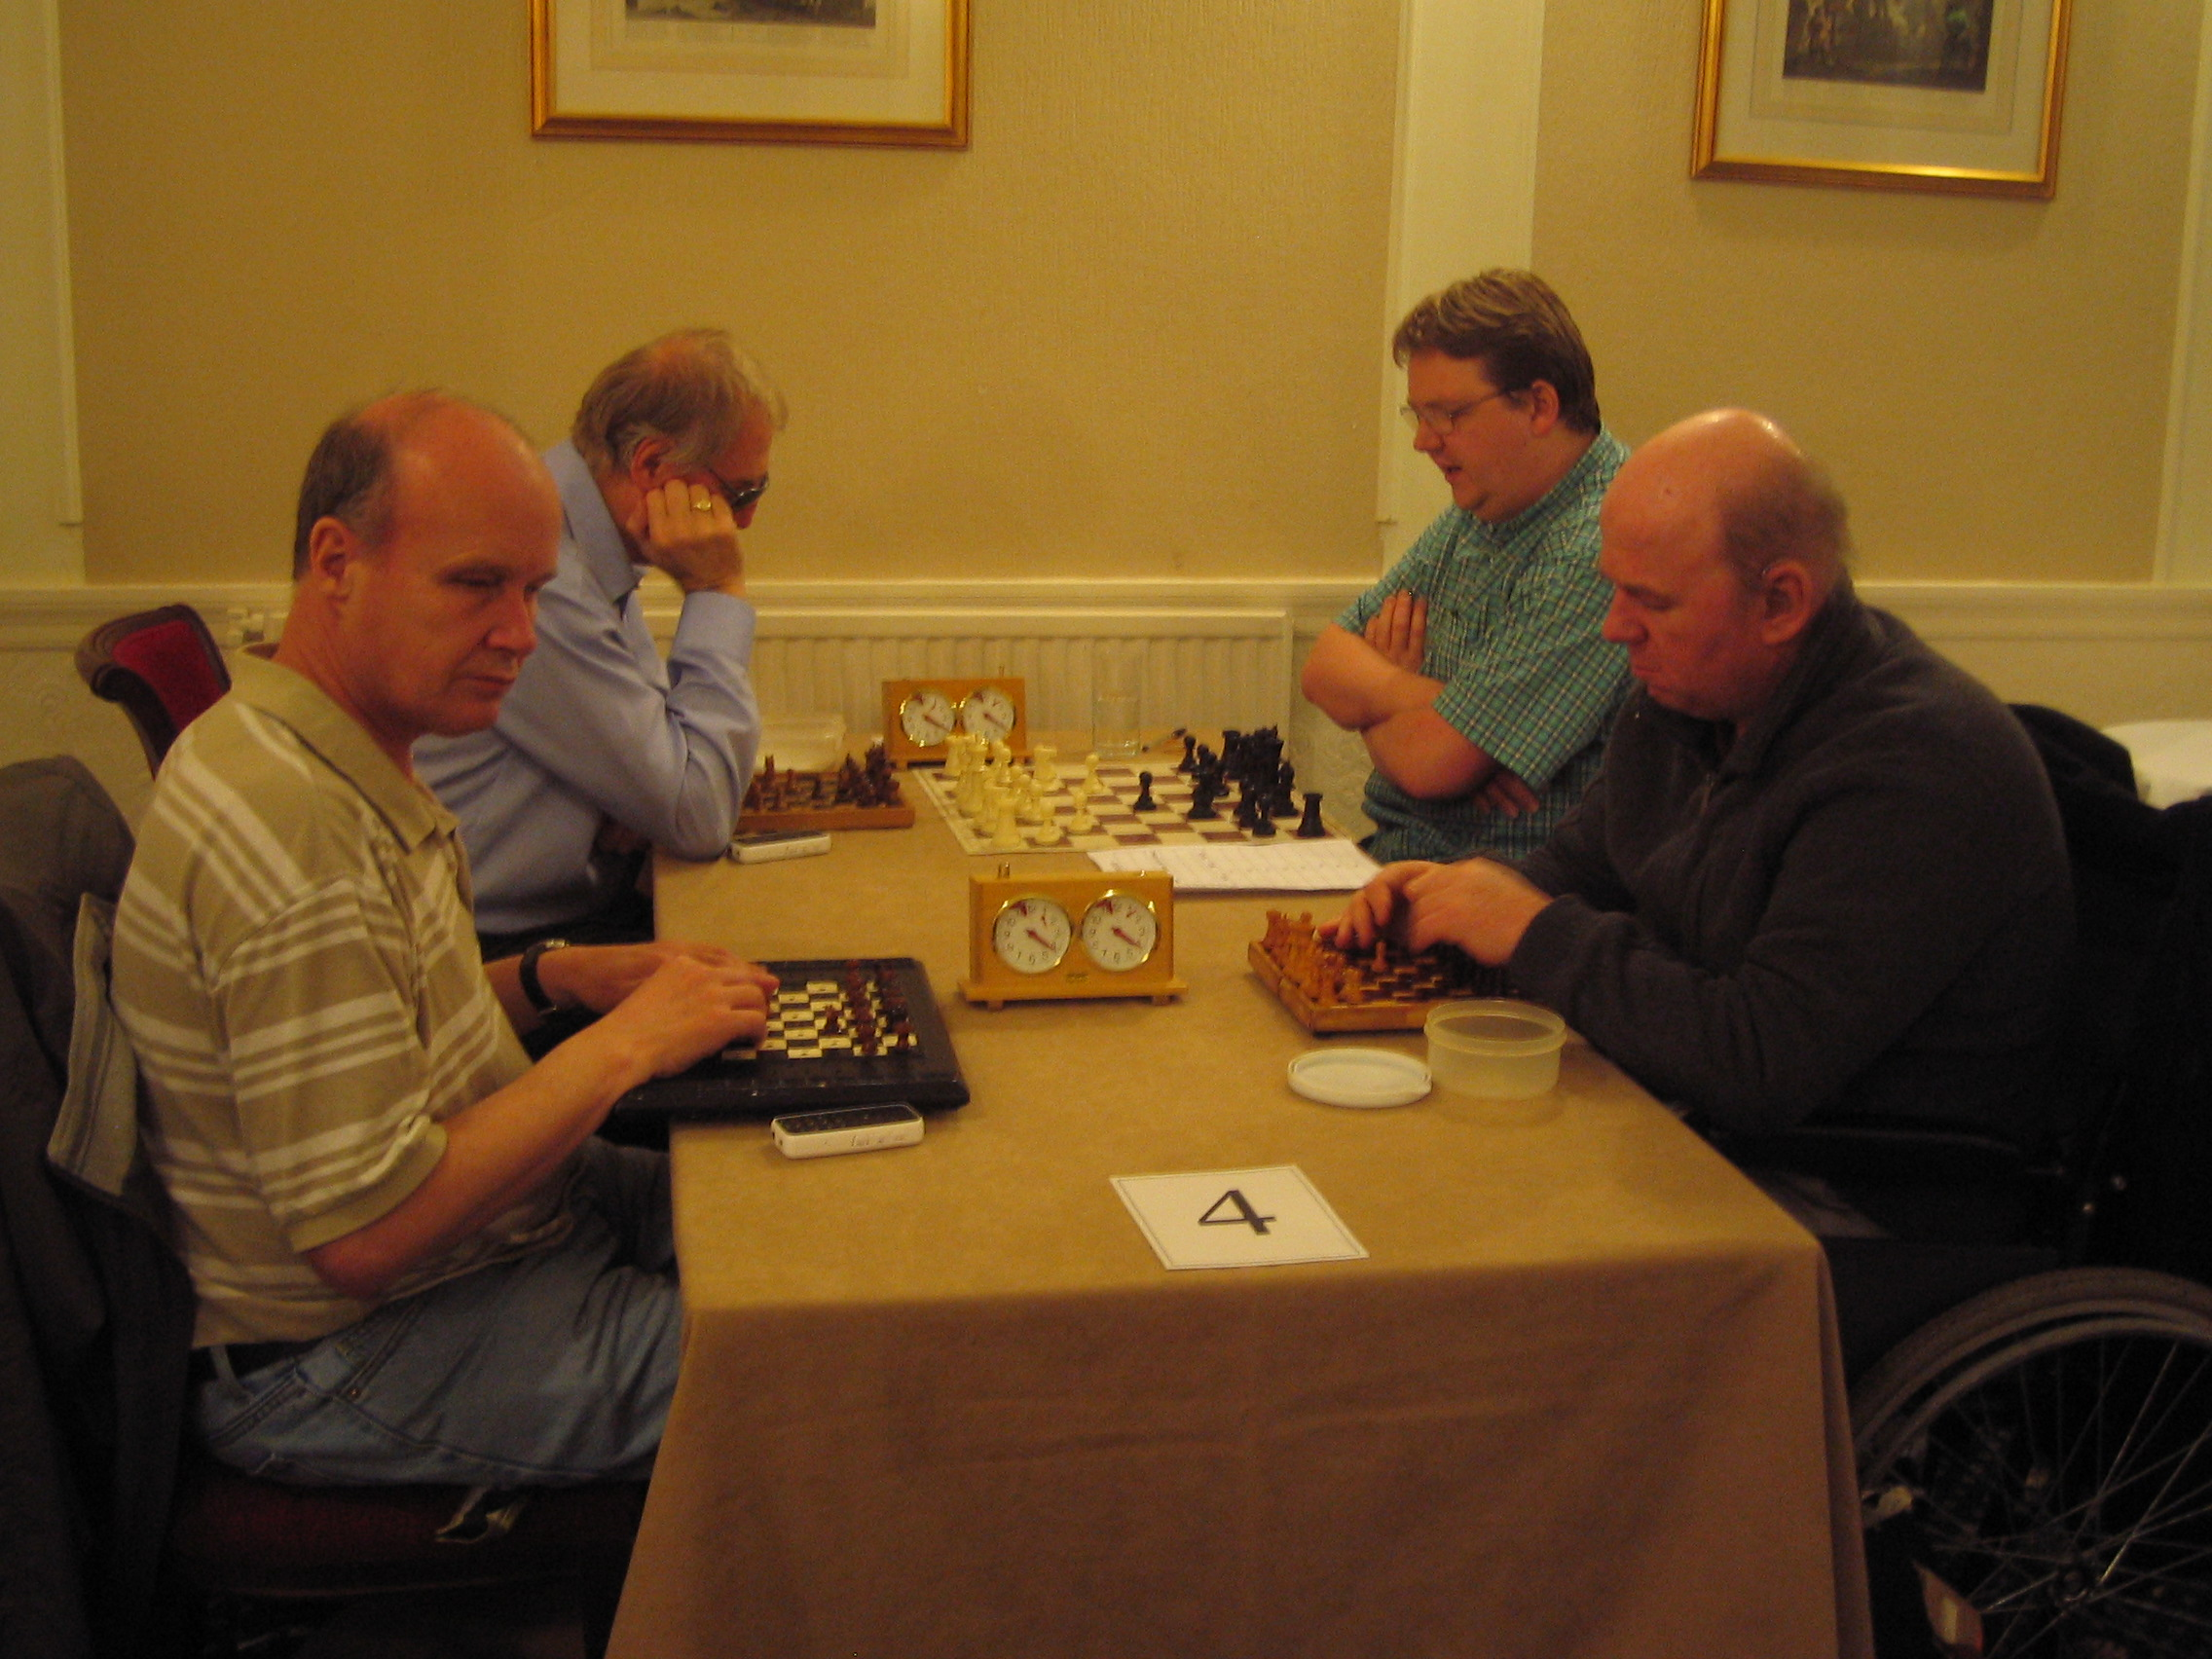 John Gallagher versus Steve Thacker and Phillip Gordon versus Tristram Cole